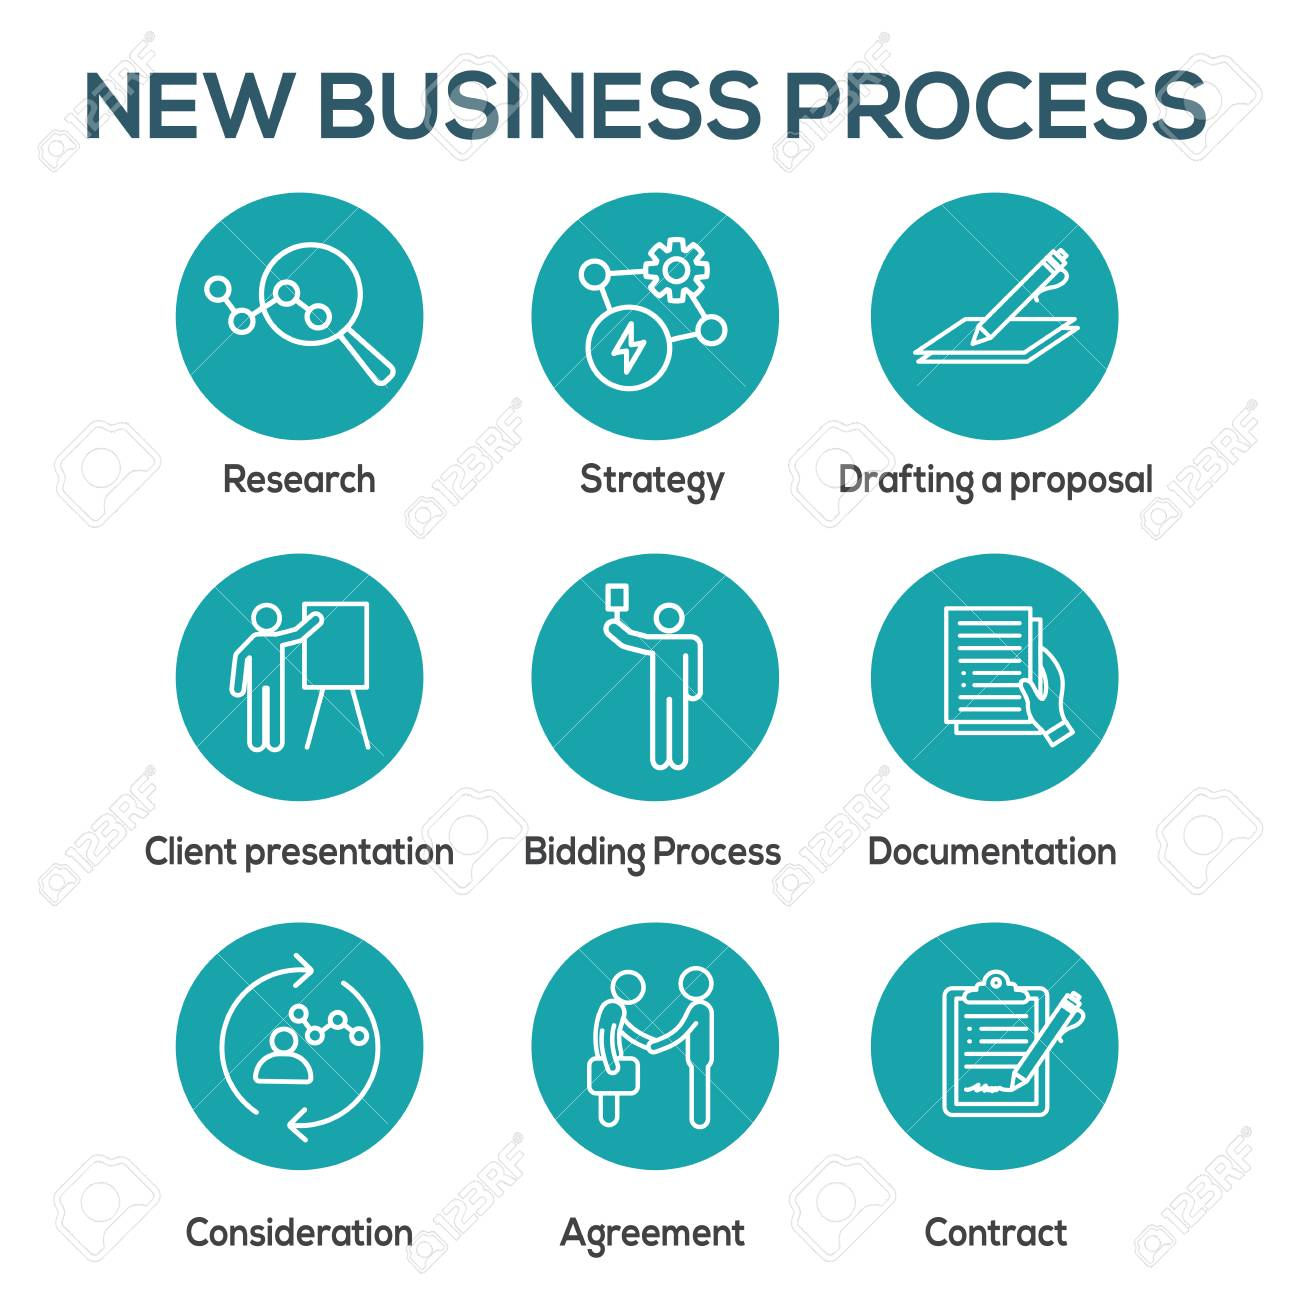 New Business Process Icon Set w Bidding Process, Proposal, & Contract - 122516173